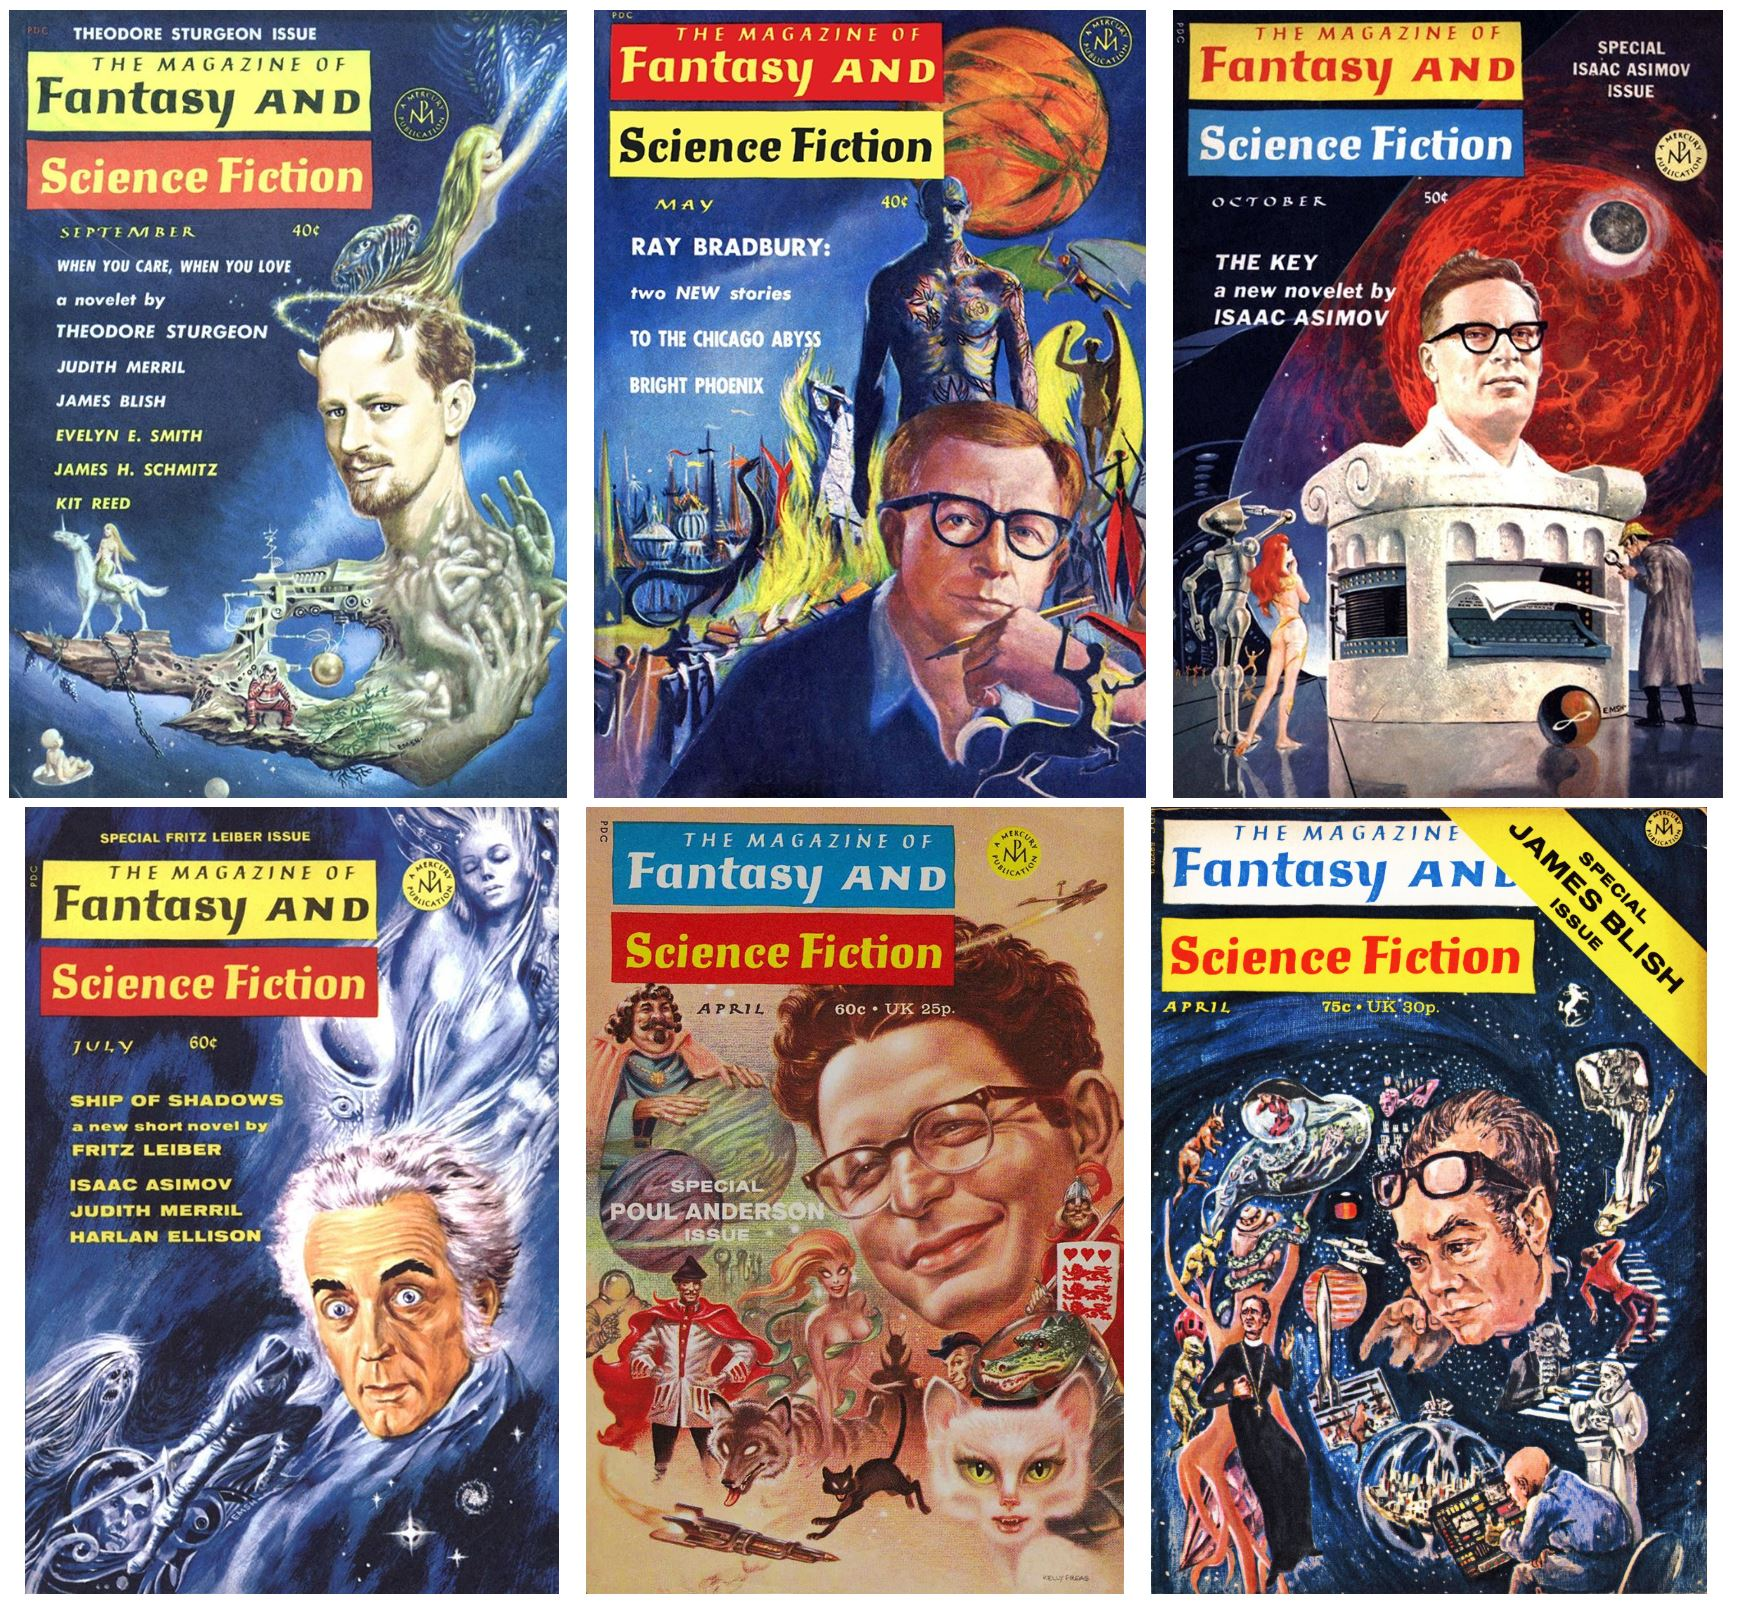 F&SF25 Special Issues